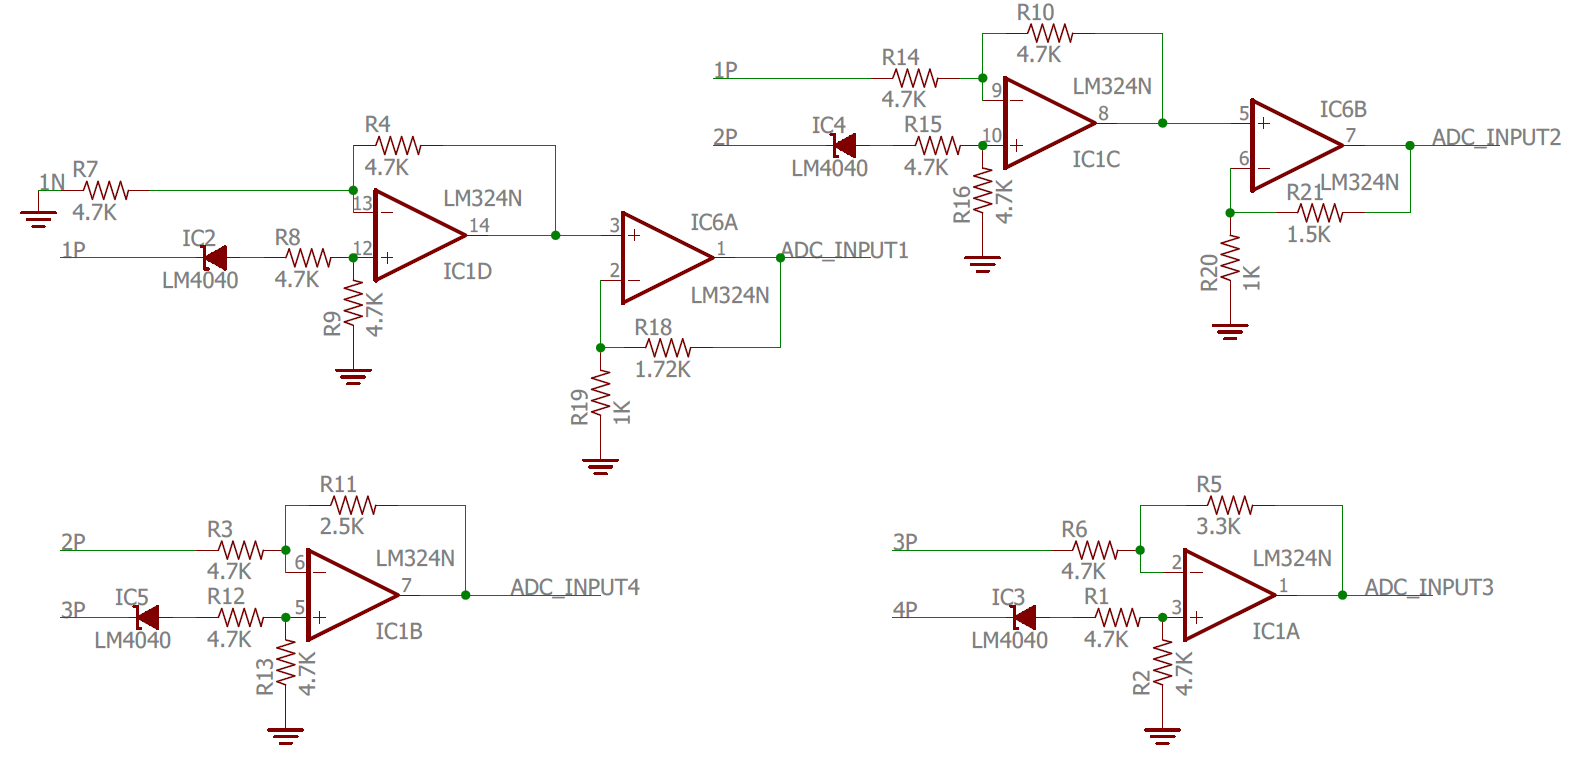 Ece477 Course Documents Op Amp Summer Circuit Figure 3 The Final Opamp As Demonstrated In Lab On A Breadboard With An Arduino Resemblance To Star Wars Rifles Is Completely Unintentional